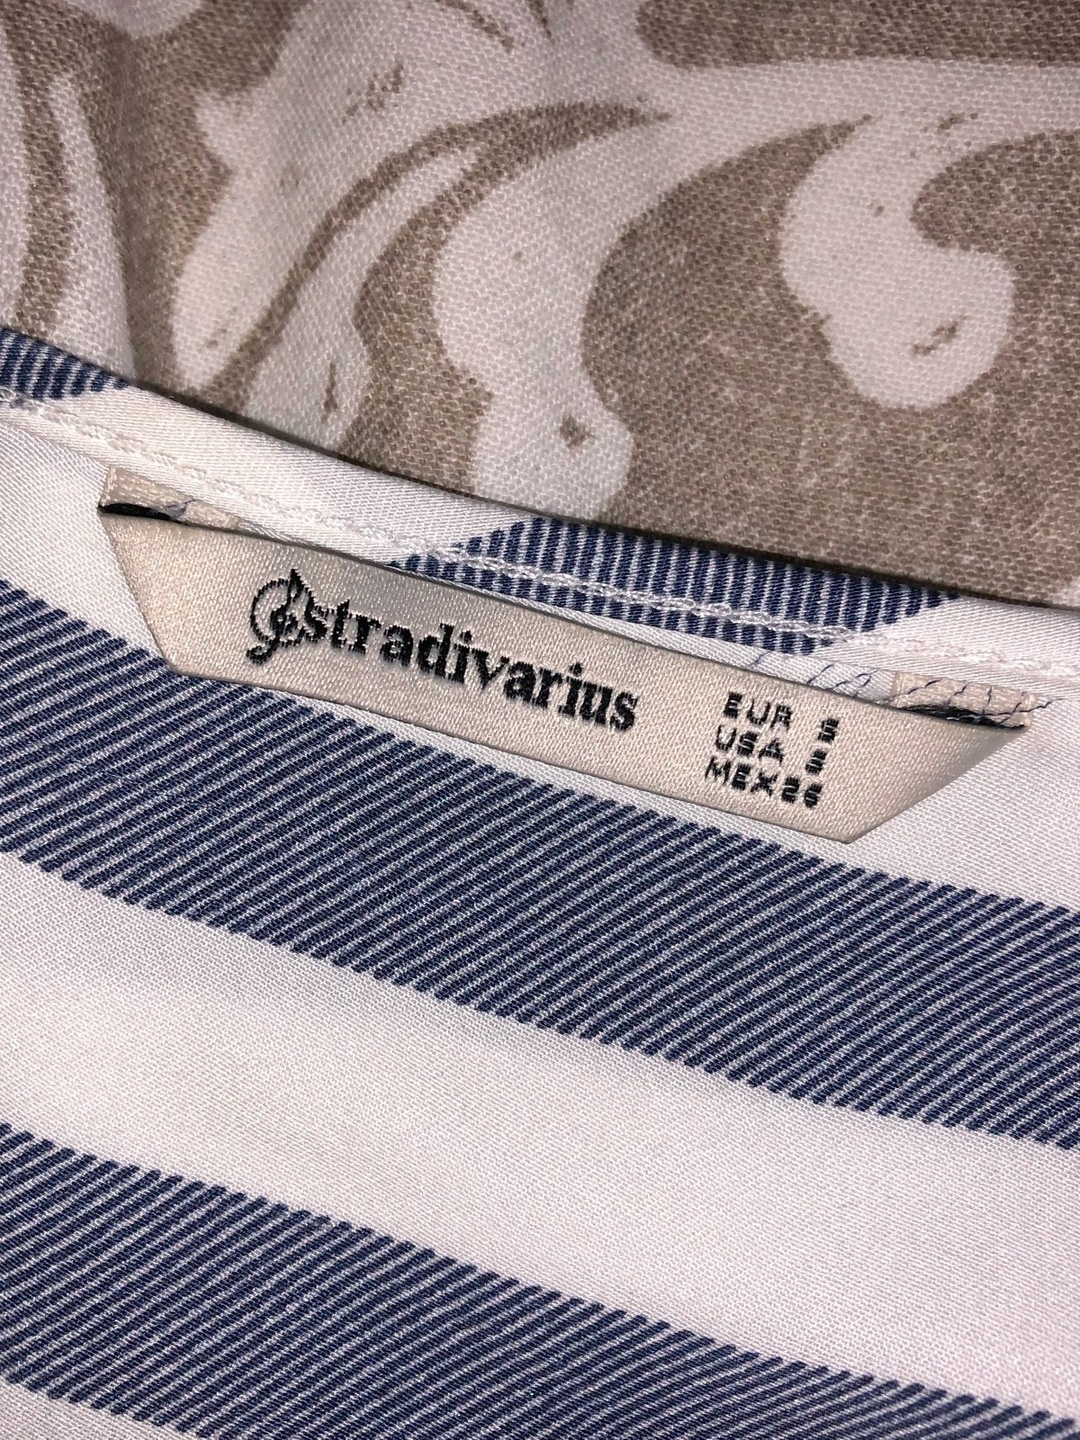 Women's blouses & shirts - STRADIVARIUS photo 2